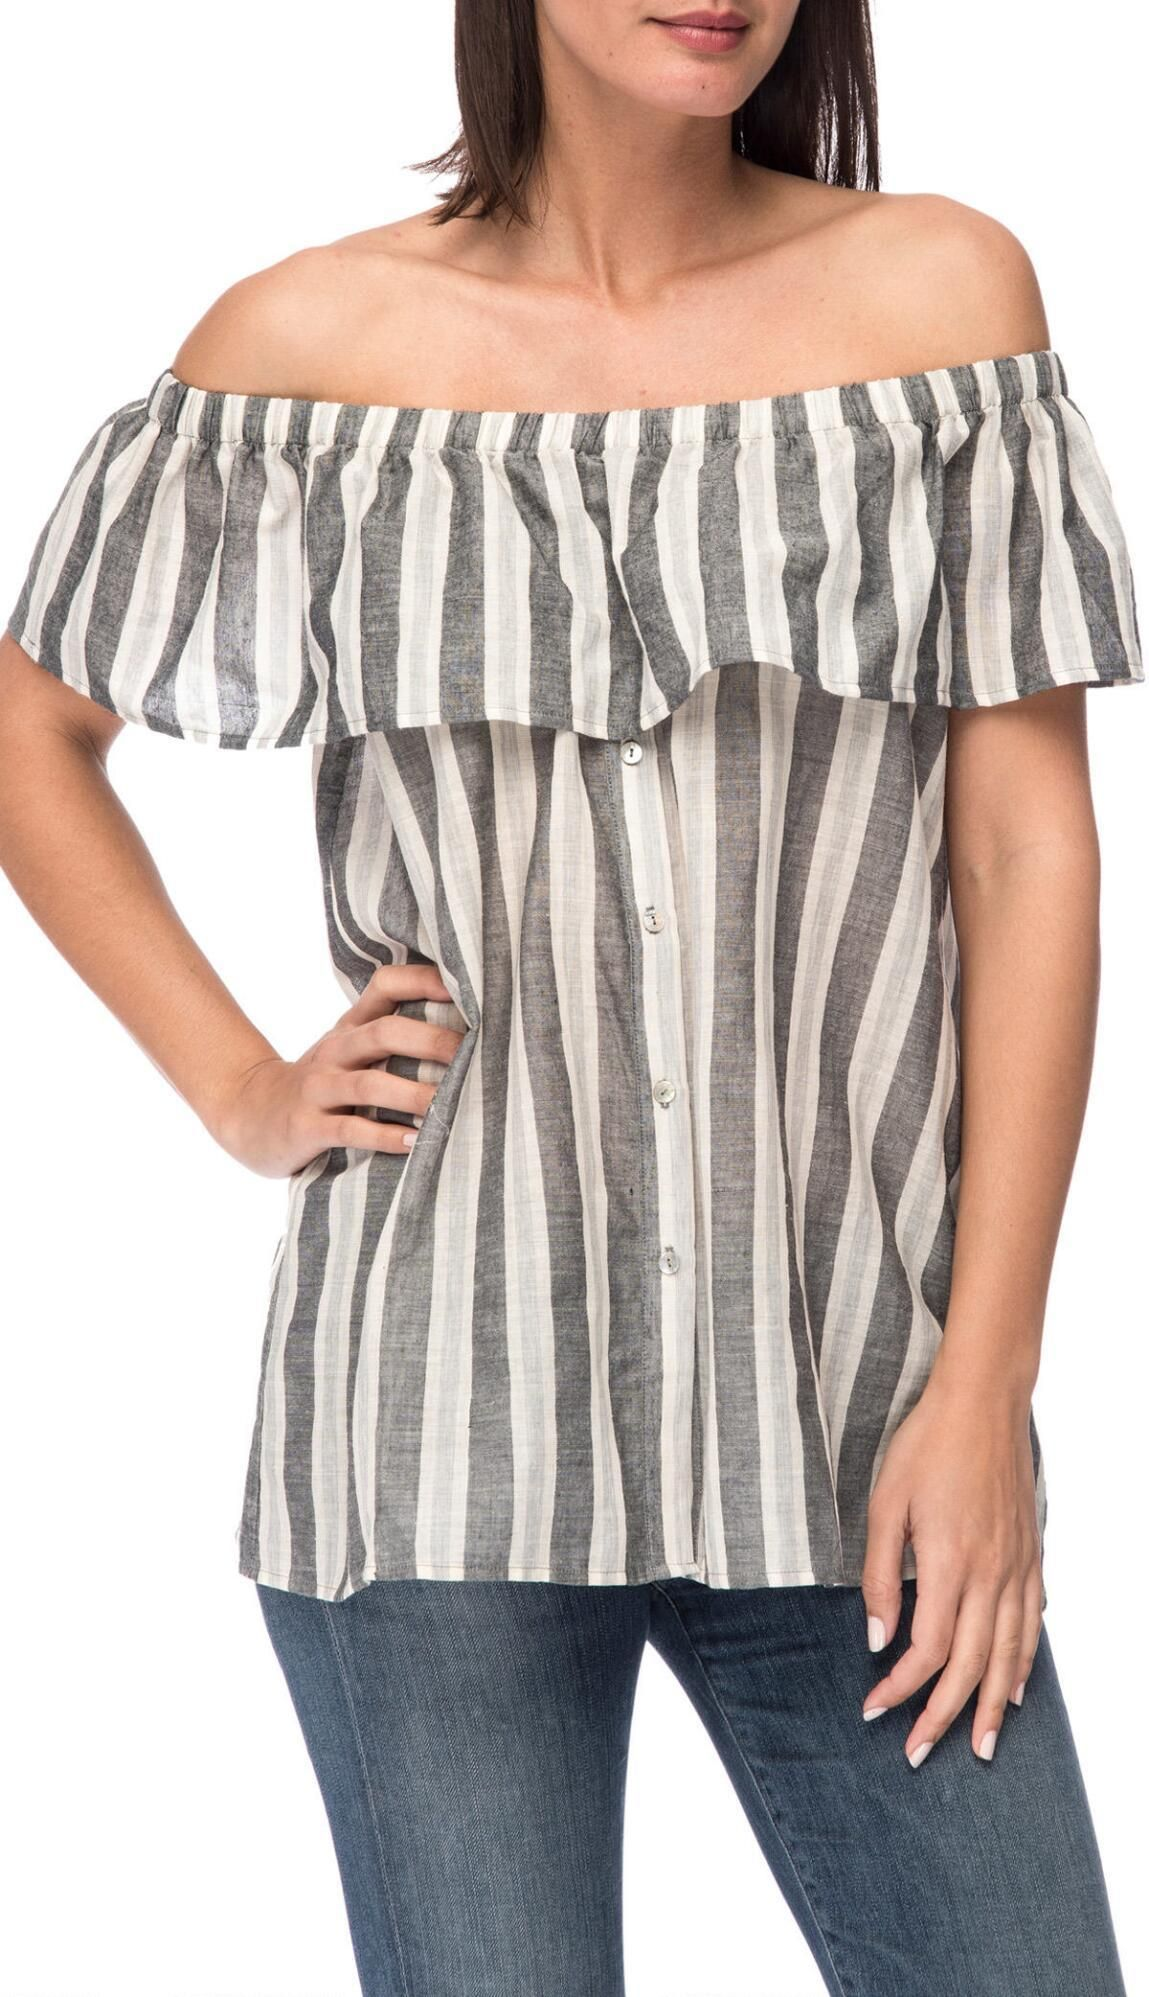 edc3a9cf020 Striped Off Shoulder Blouse Details: - Off The Shoulder - Linen Like Feel -  Button Front - Ruffle Top - 100% Cotton - Models Are Wearing Size Small